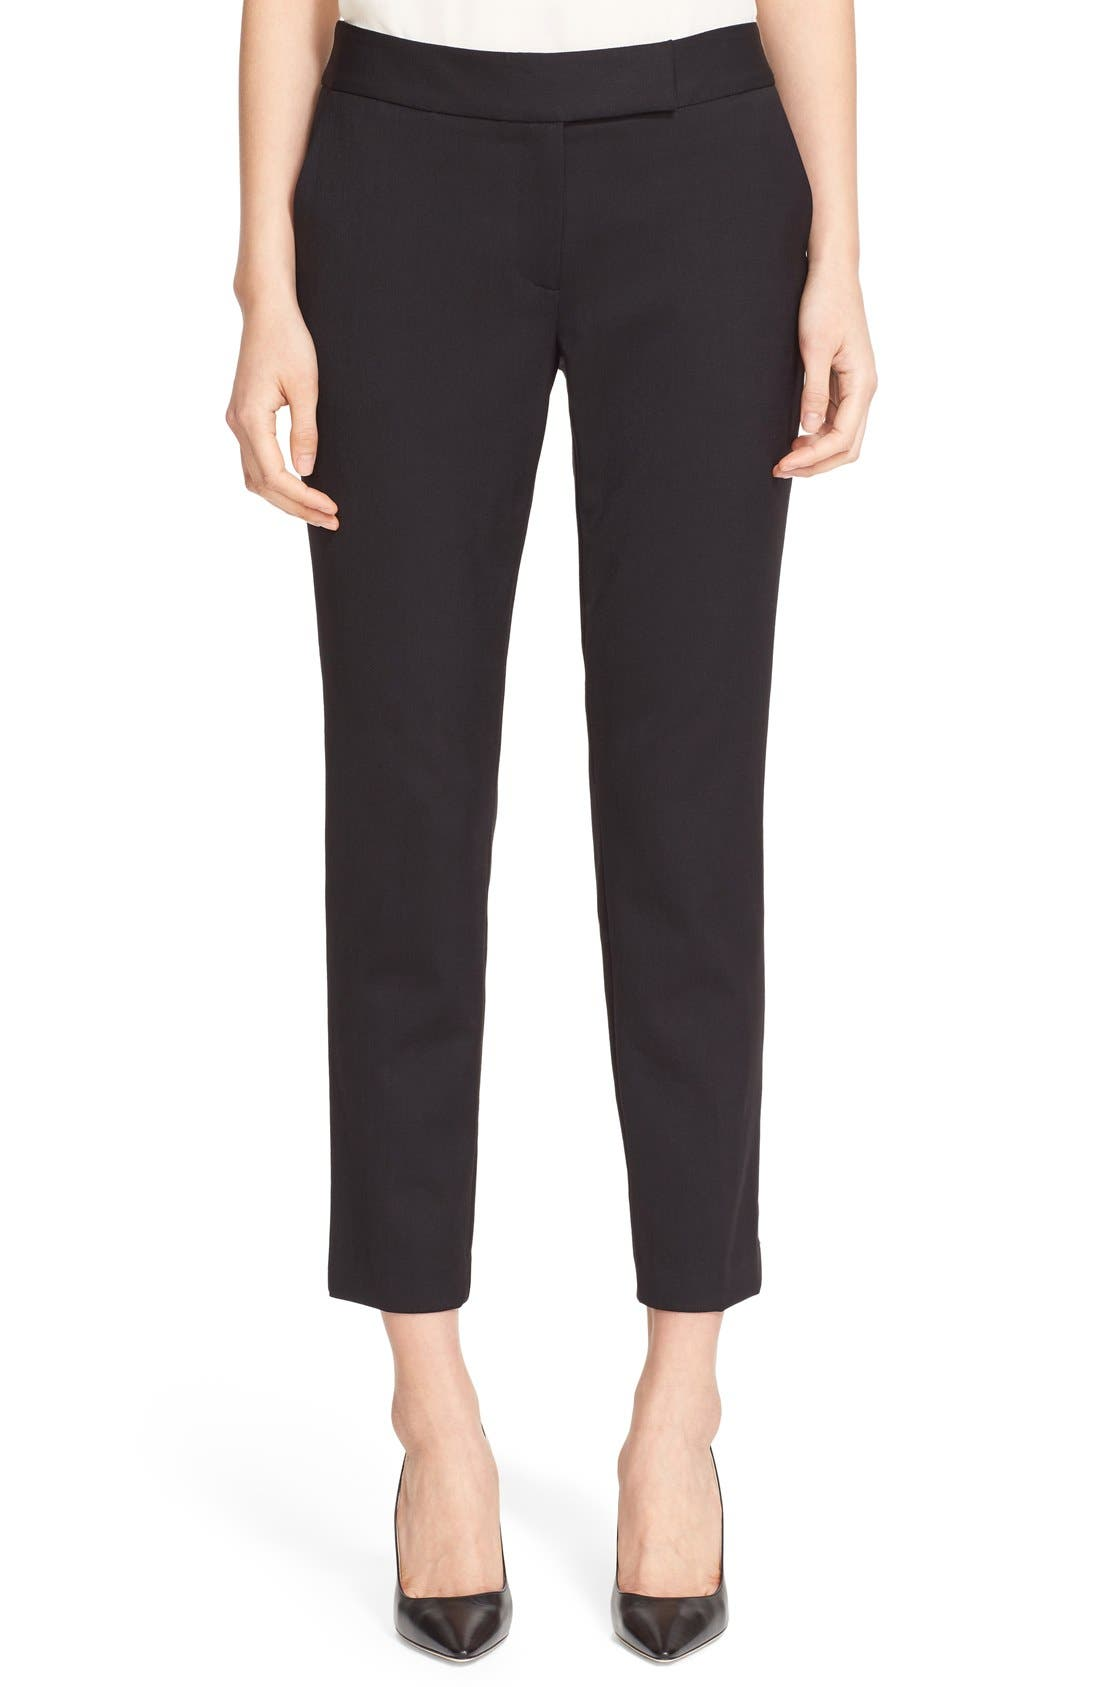 Alternate Image 1 Selected - Milly Stretch Wool Skinny Ankle Pants